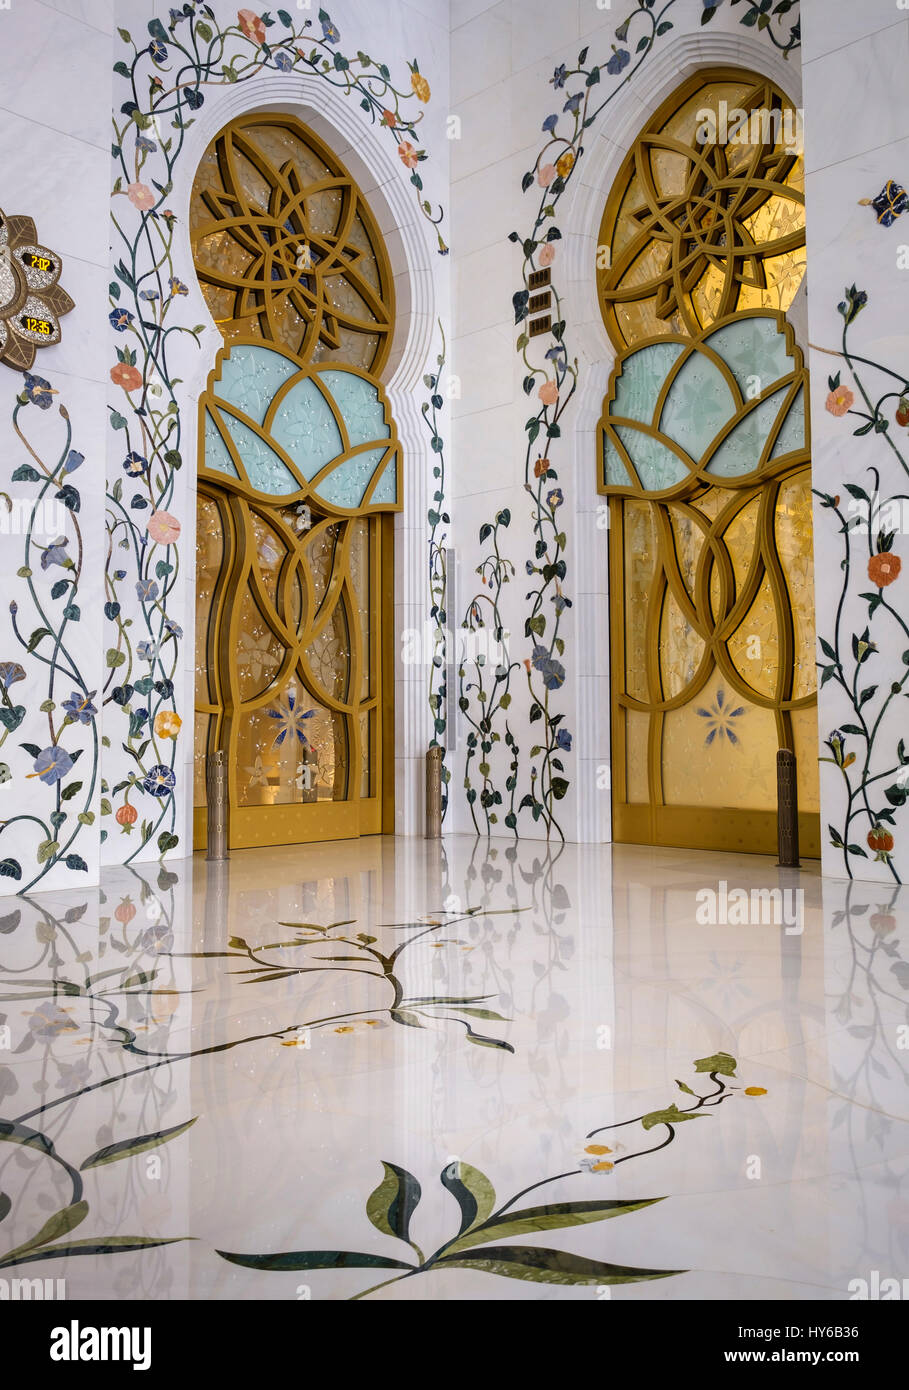 UNITED ARAB EMIRATES, ABU DHABI - CIRCA JANUARY 2017:  Interior Designs of the  Sheikh Zayed Mosque - Stock Image